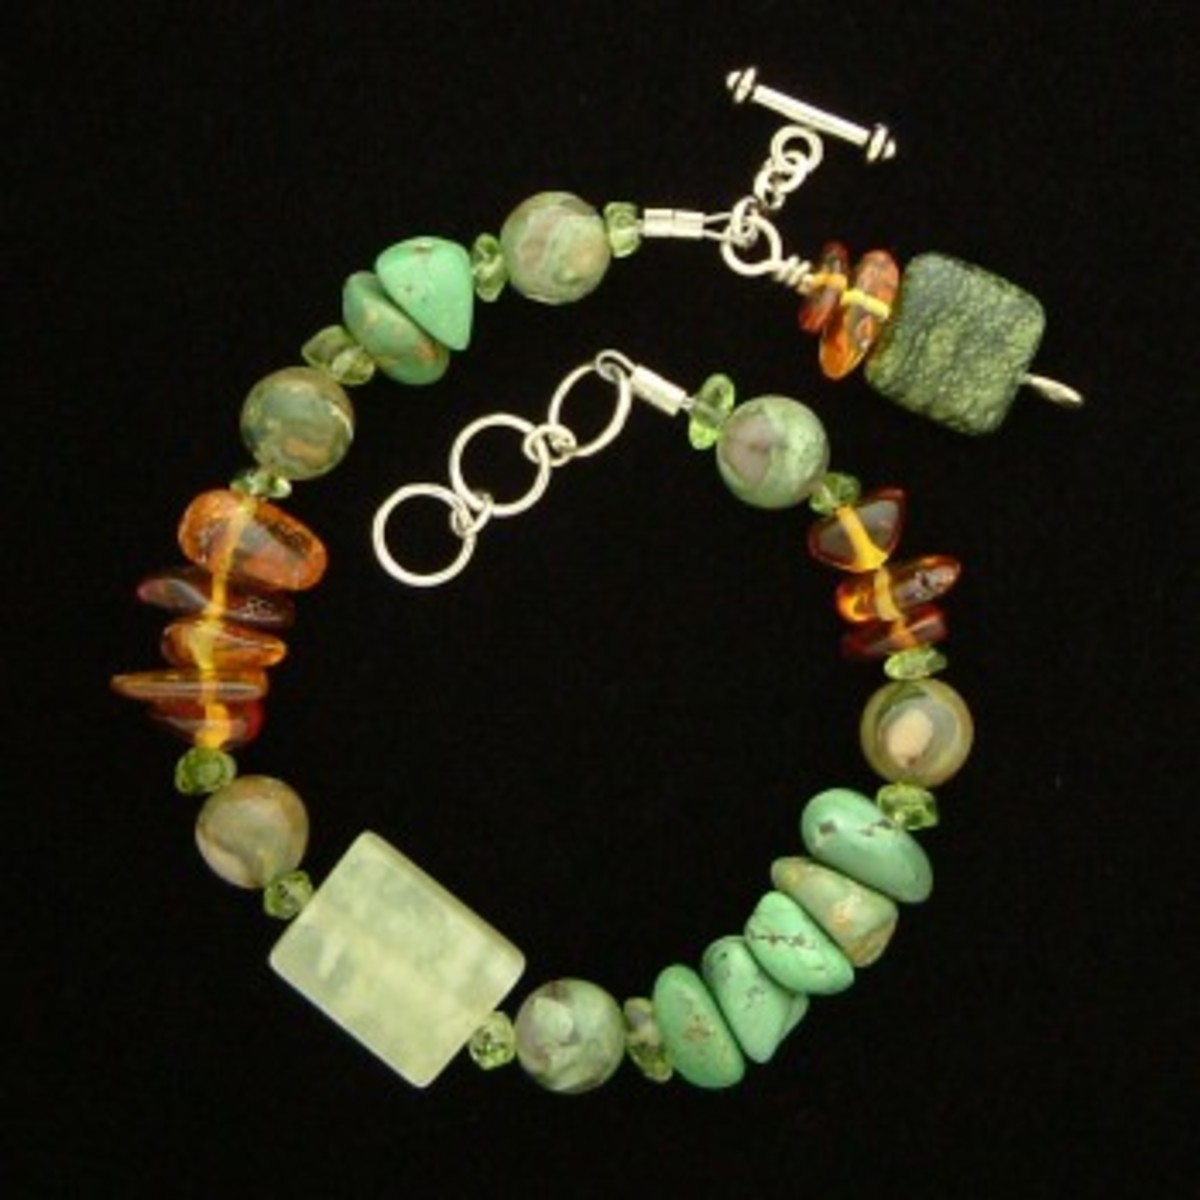 Green turquoise, amber, and other gems